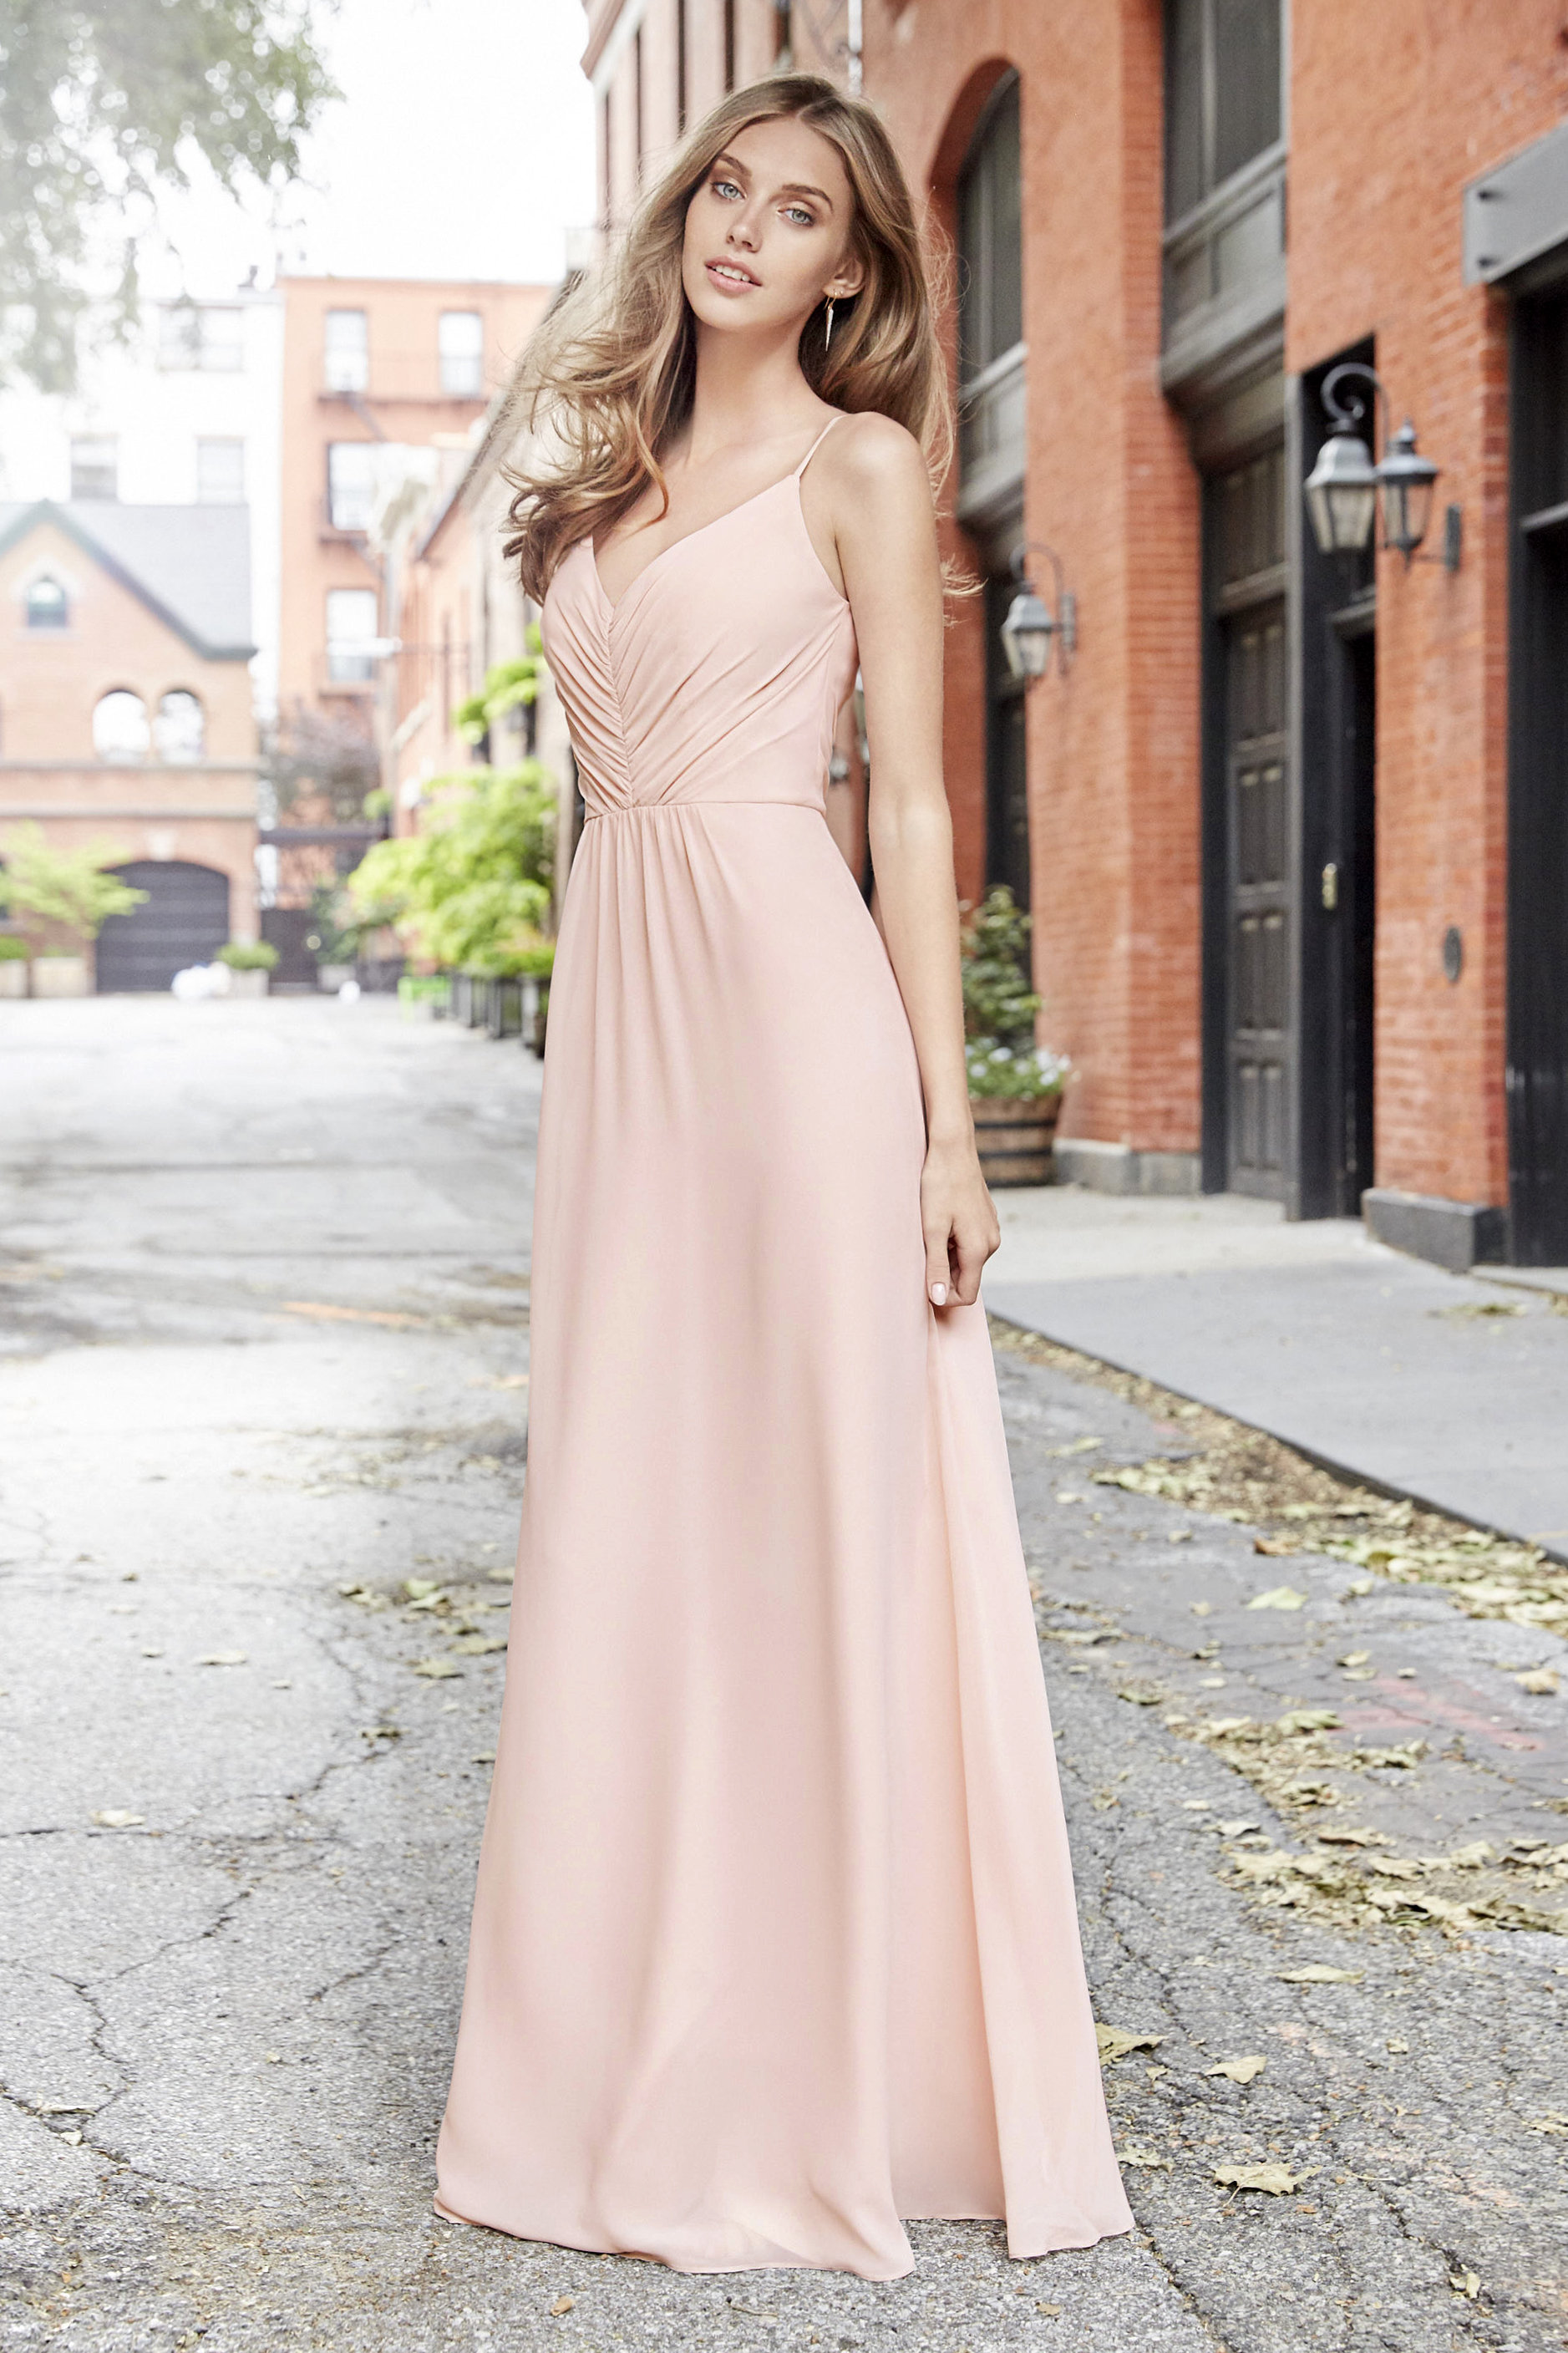 Style 5763 classic Hayley Paige look in blush chiffon